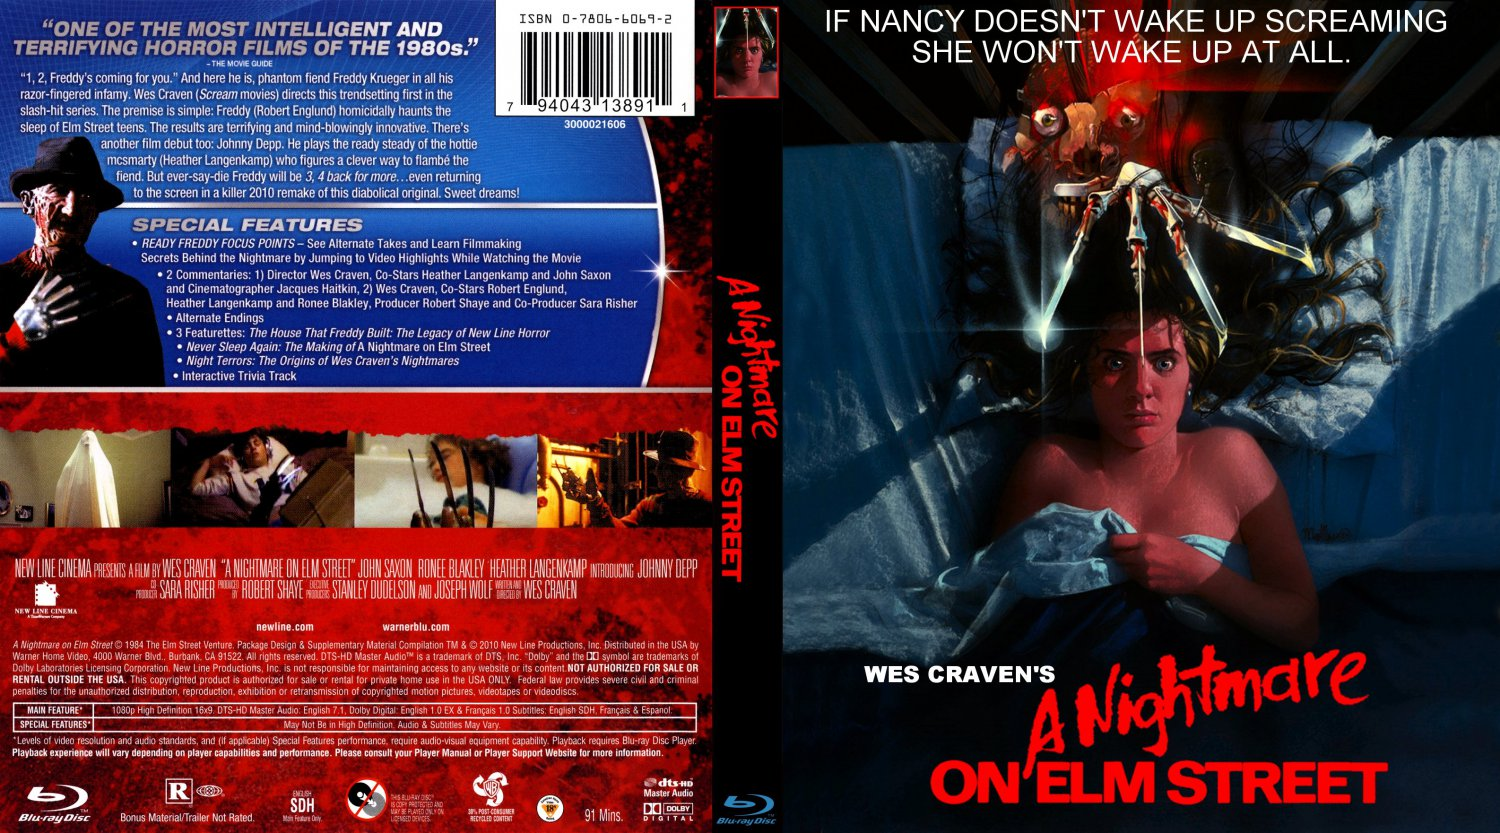 a review of the american horror film series nightmare on elm street by wes craven For wes craven, the creator of the nightmare on elm street franchise, how to reinvent a monster he watched transform the supernatural horror genre from hokey bloody d-movies into box-office winners, freddy krueger, was the challenge.